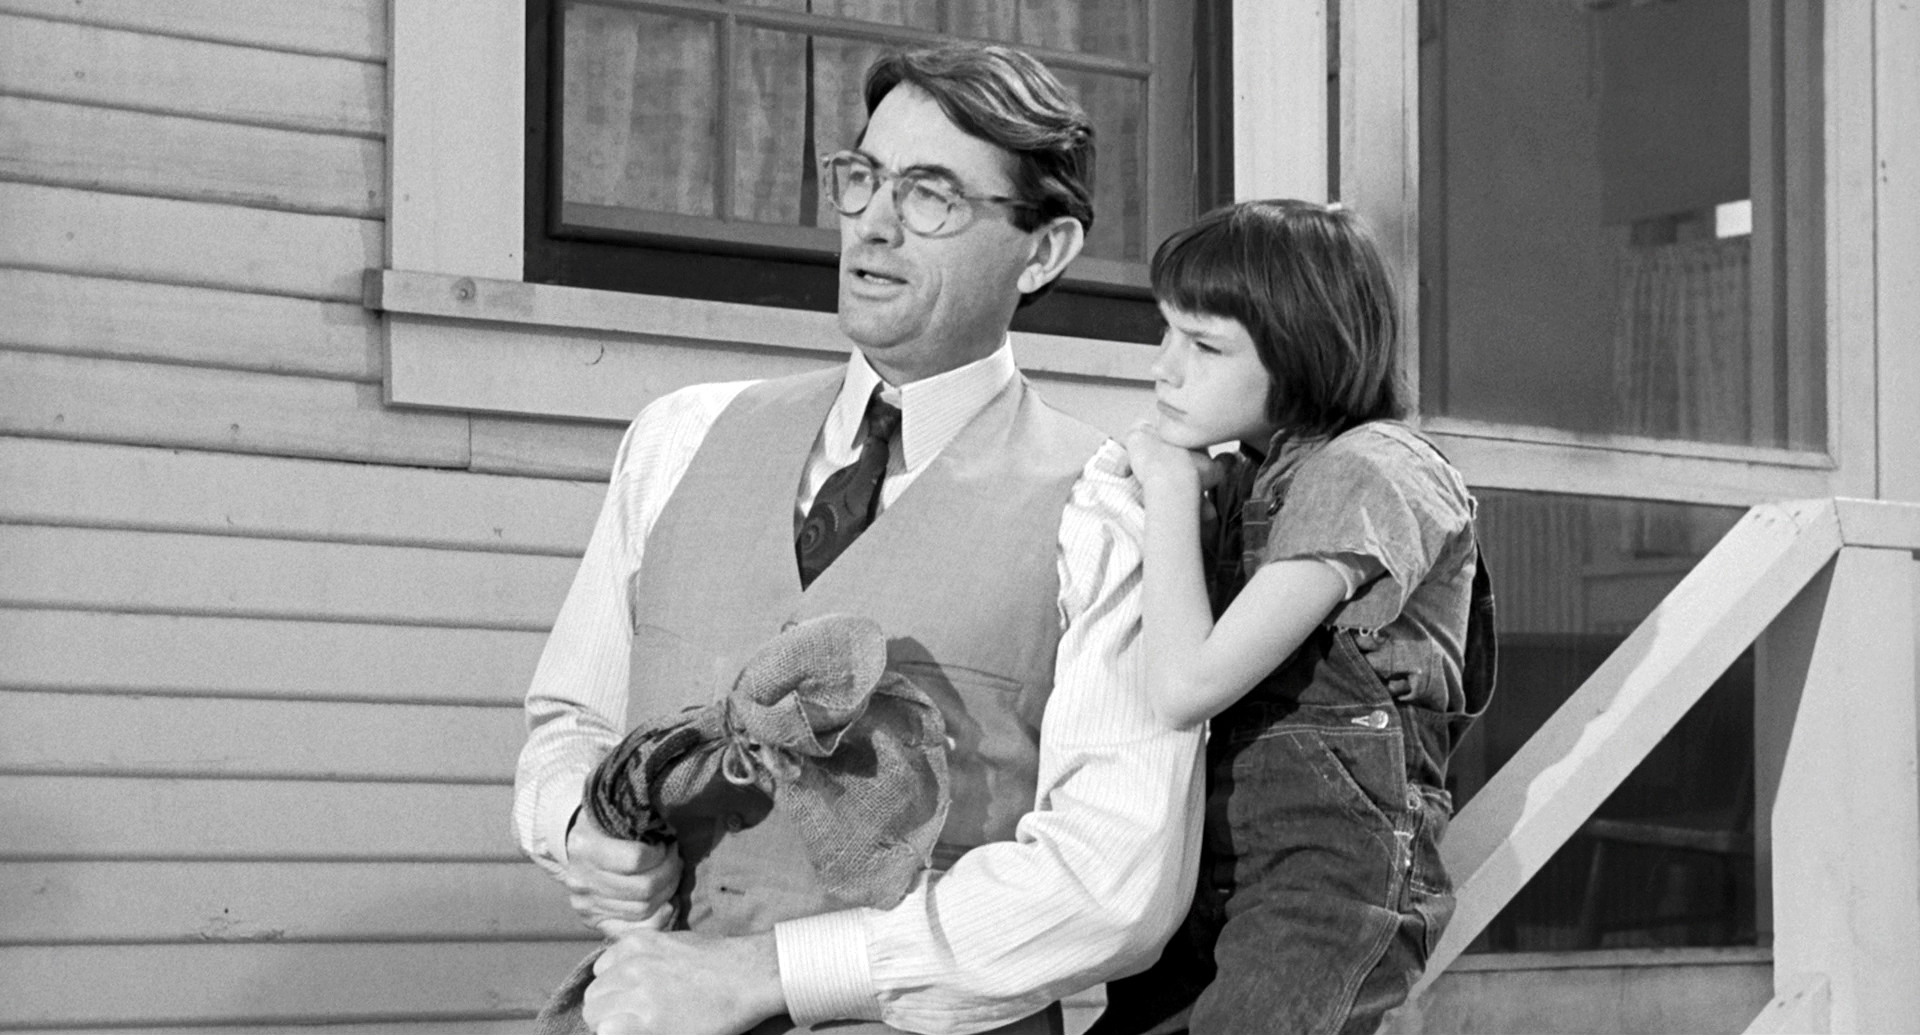 a review of to kill a mockingbird a film by robert mulligan Watch to kill a mockingbird movie trailer and get the latest cast info, photos,  movie review  mockingbird director robert mulligan dies at 83.